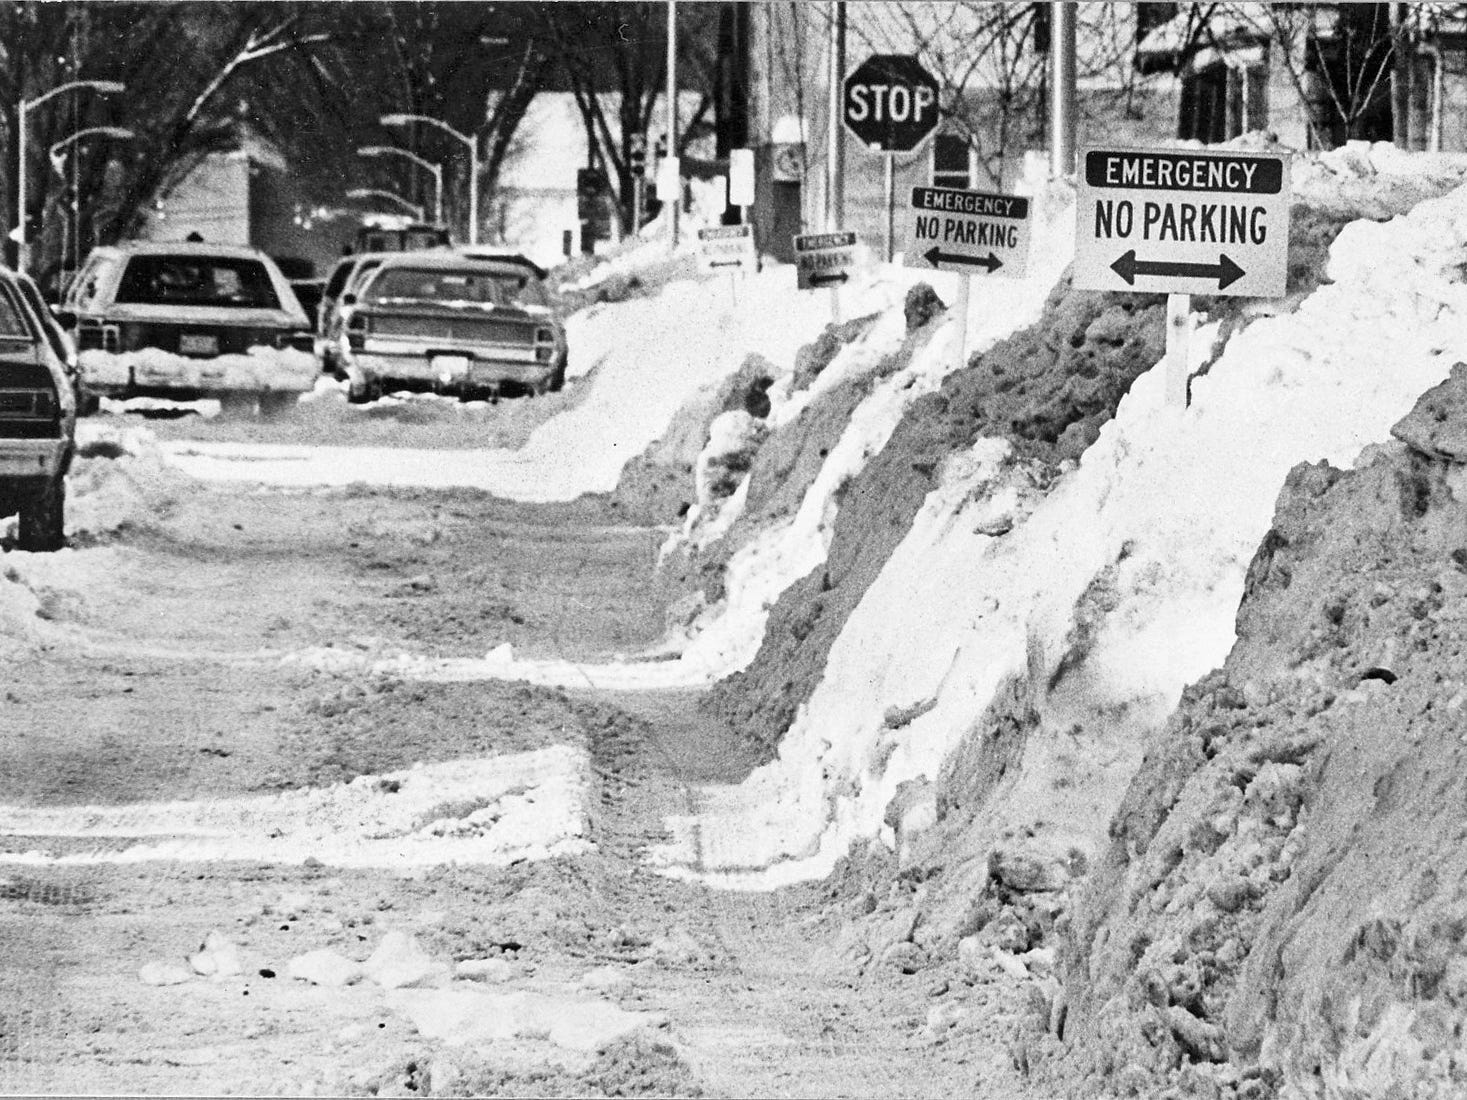 Signs punctuate snowbanks on Lapham Street near 74th Street in West Allis, where crews were preparing to remove snow from the street on Jan. 29, 1979. The Milwaukee area was still digging out from a snowstorm that dumped more than 10 inches of snow five days earlier - the third such snowstorm in less than a month. This photo was published in the Jan. 30, 1979, Milwaukee Journal.